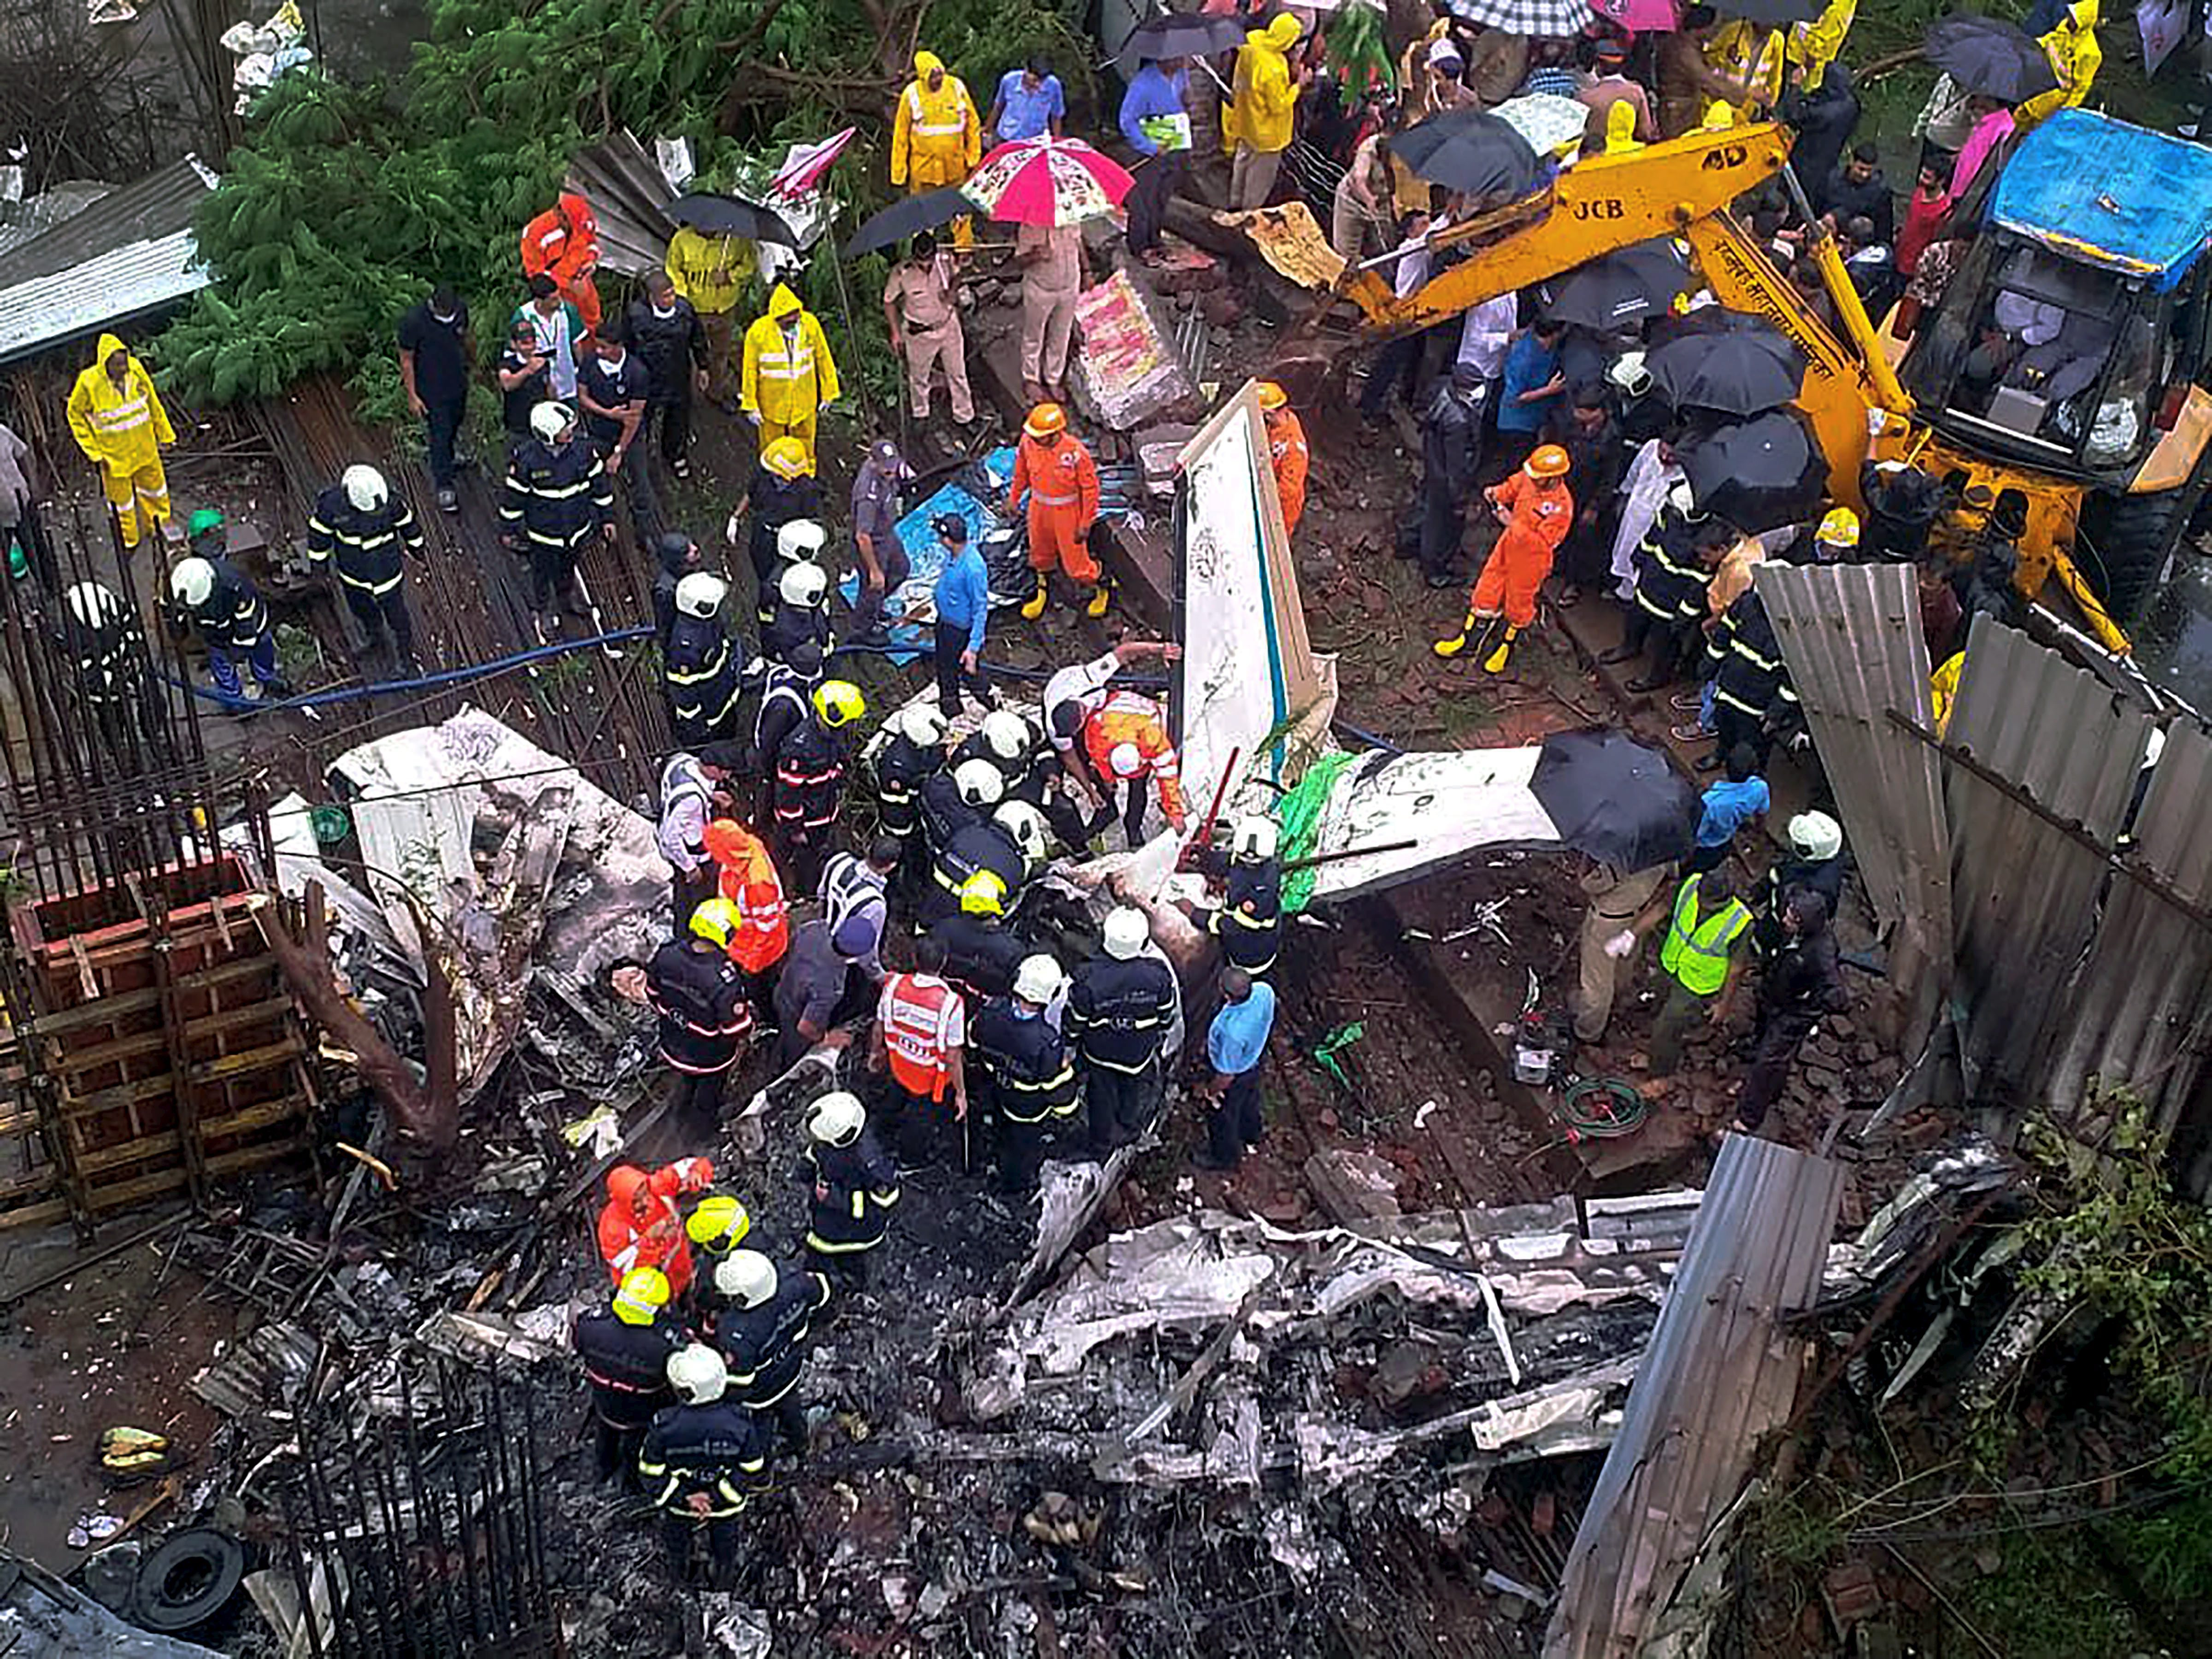 Rescue personnel at the crash site. (Credit: PTI)